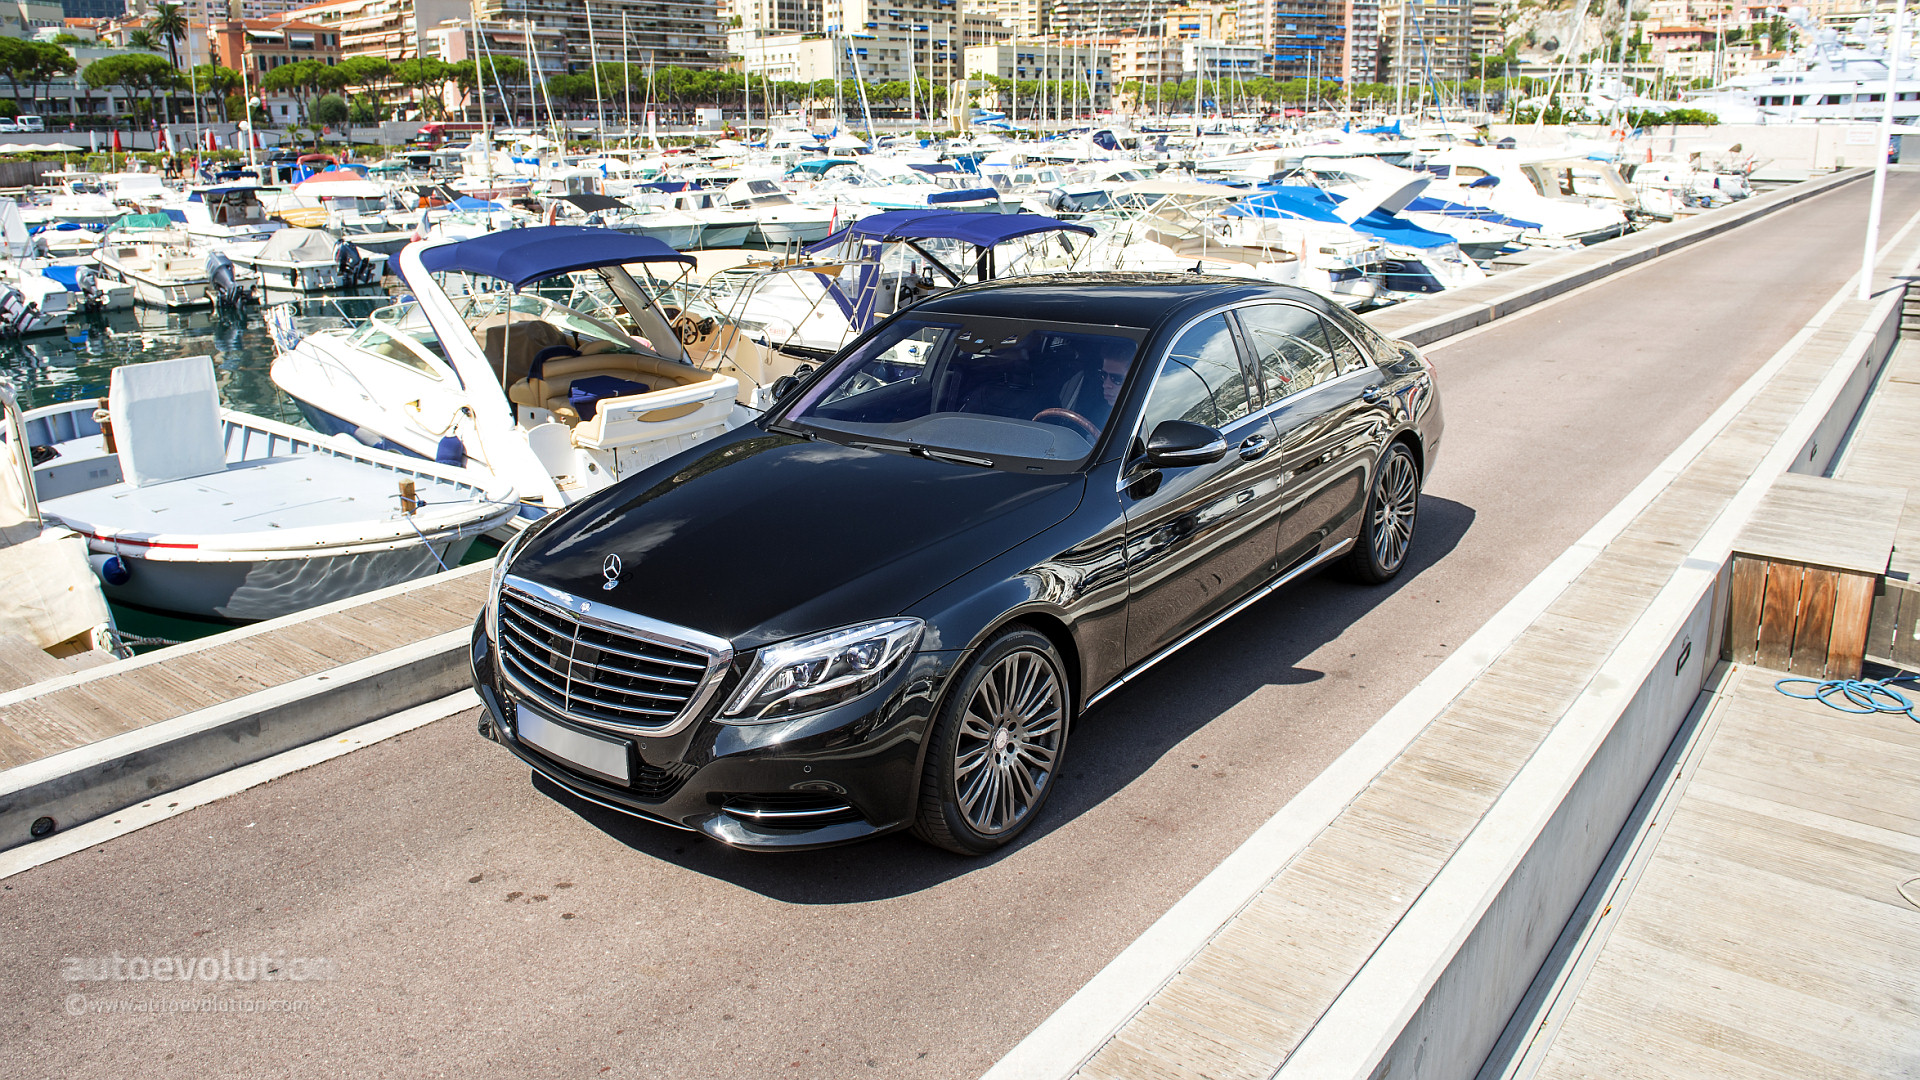 2014 mercedes benz s550 tested autoevolution for How much is a 2014 mercedes benz s550